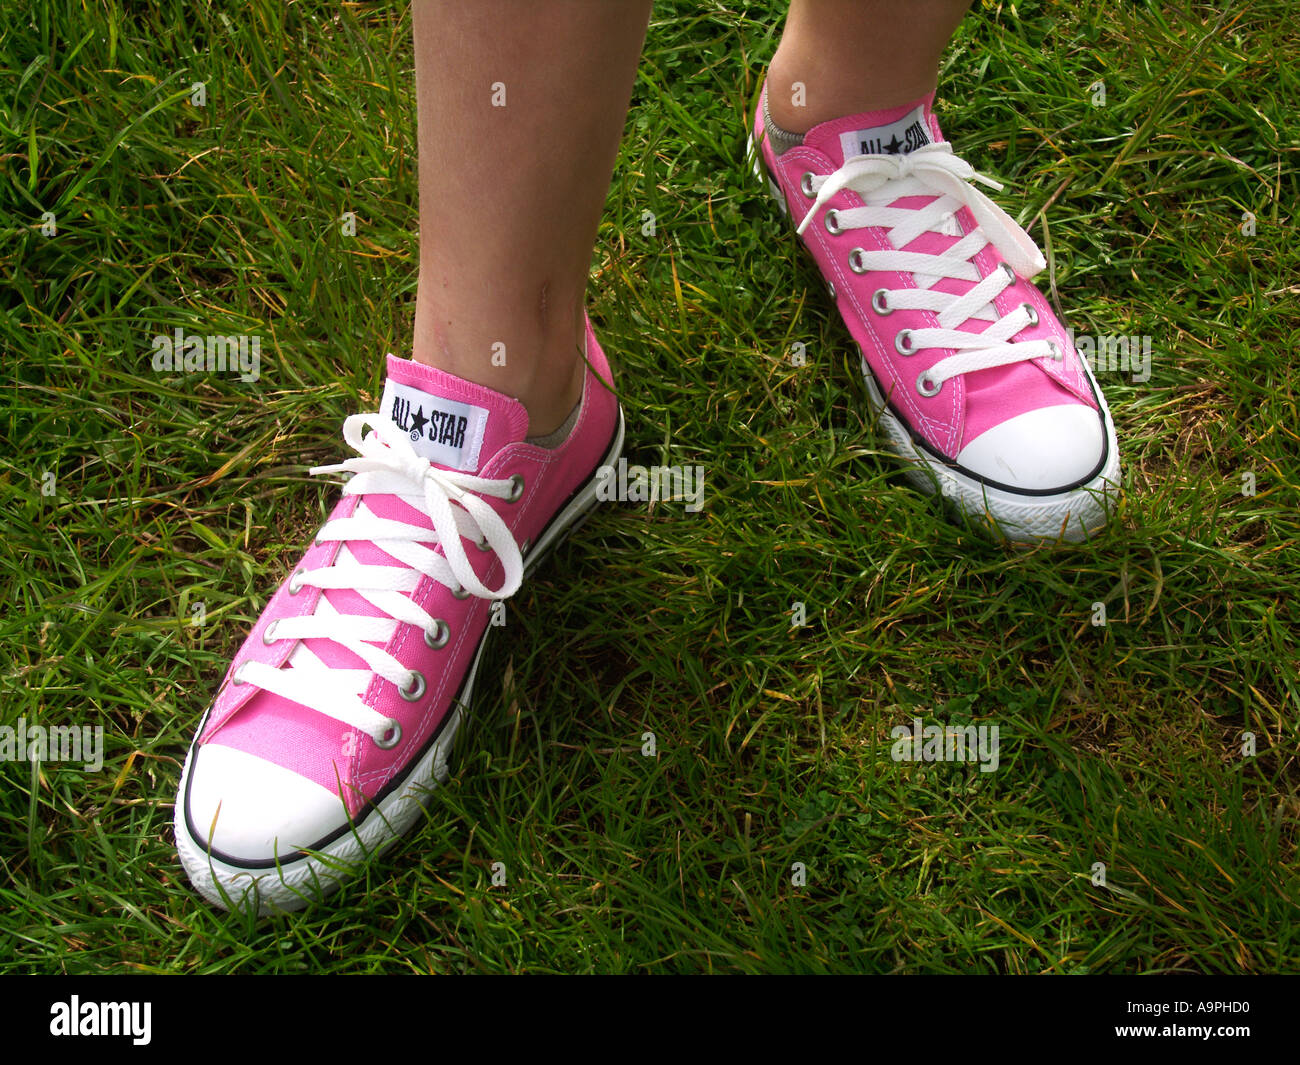 dffef0f89007b4 Girl s feet wearing new pair of pink All Star trainer shoes Stock ...